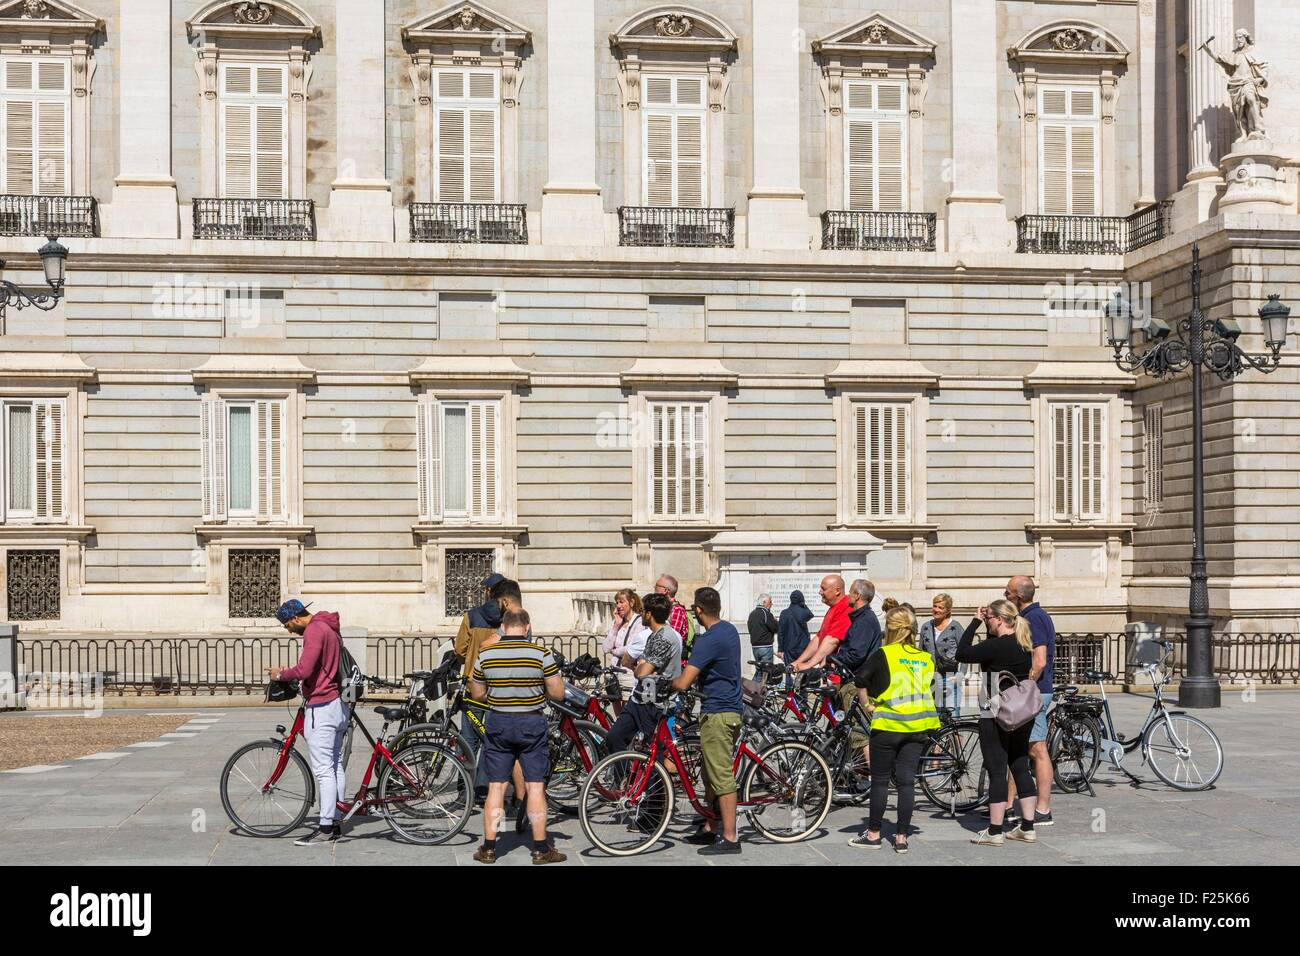 Spain, Madrid, group of tourists visiting the city by bike in front of the Royal Palace (Palacio Real) - Stock Image